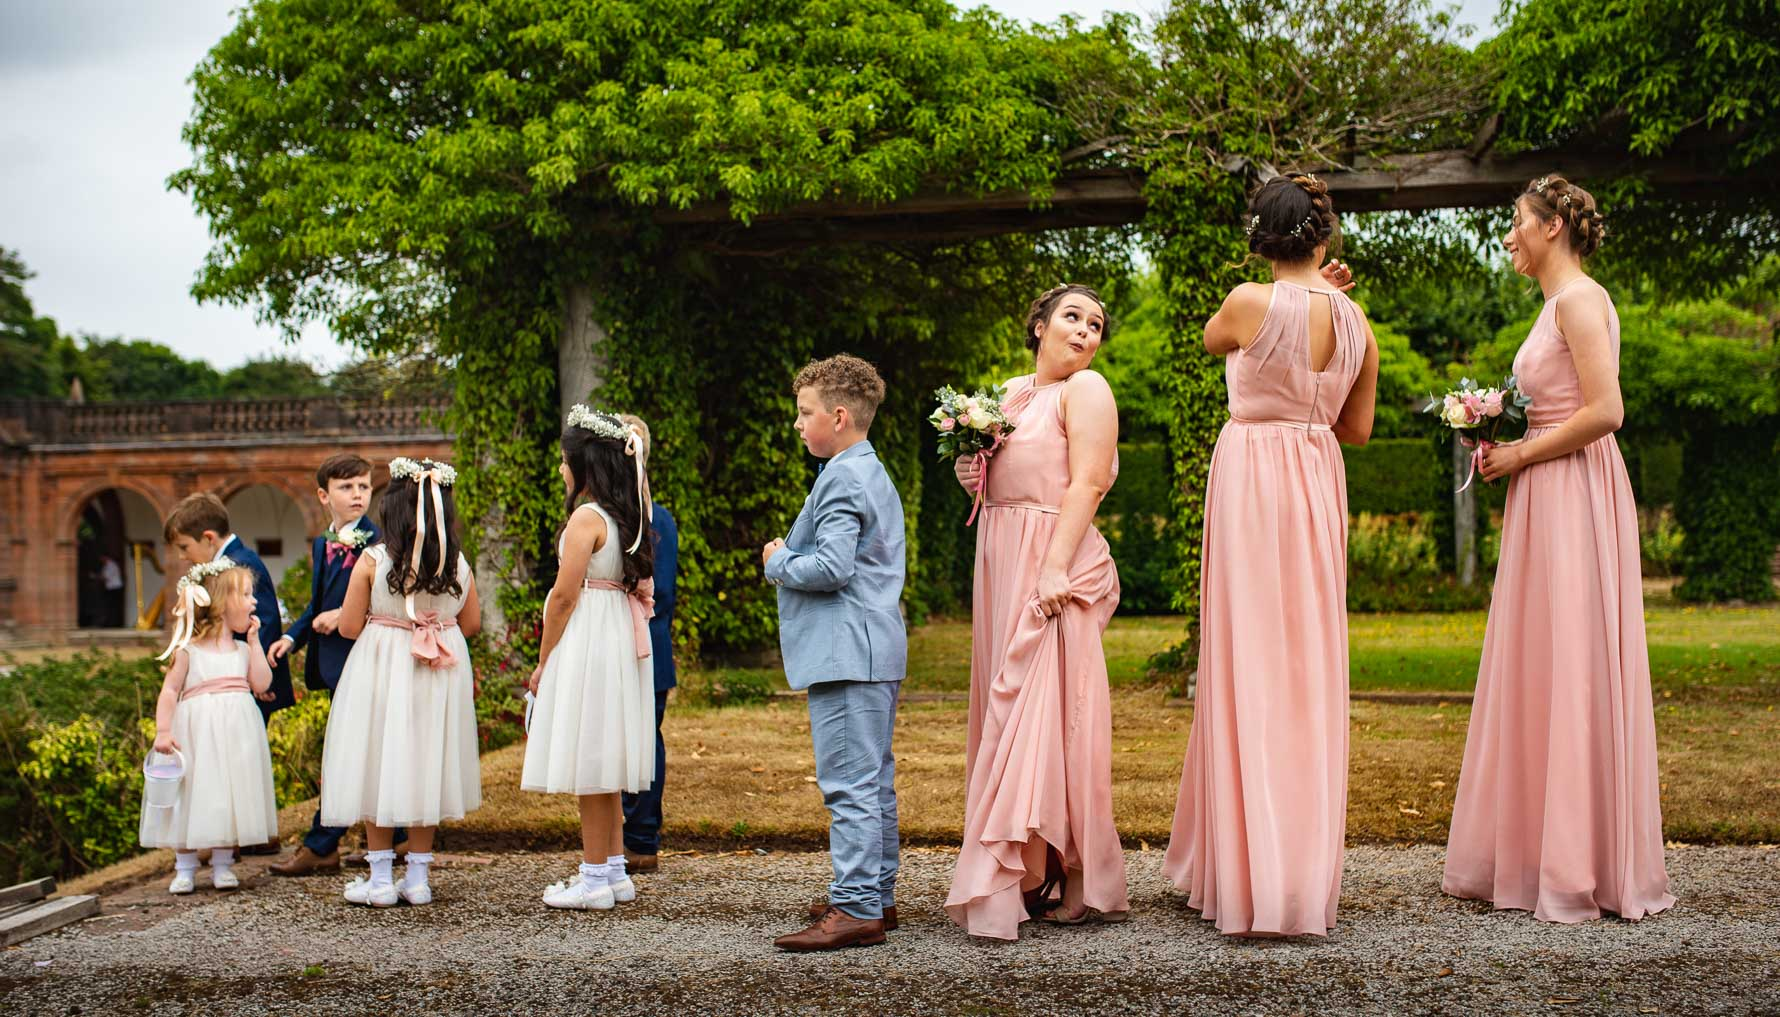 Lineup of bridal party and a cheeky joke